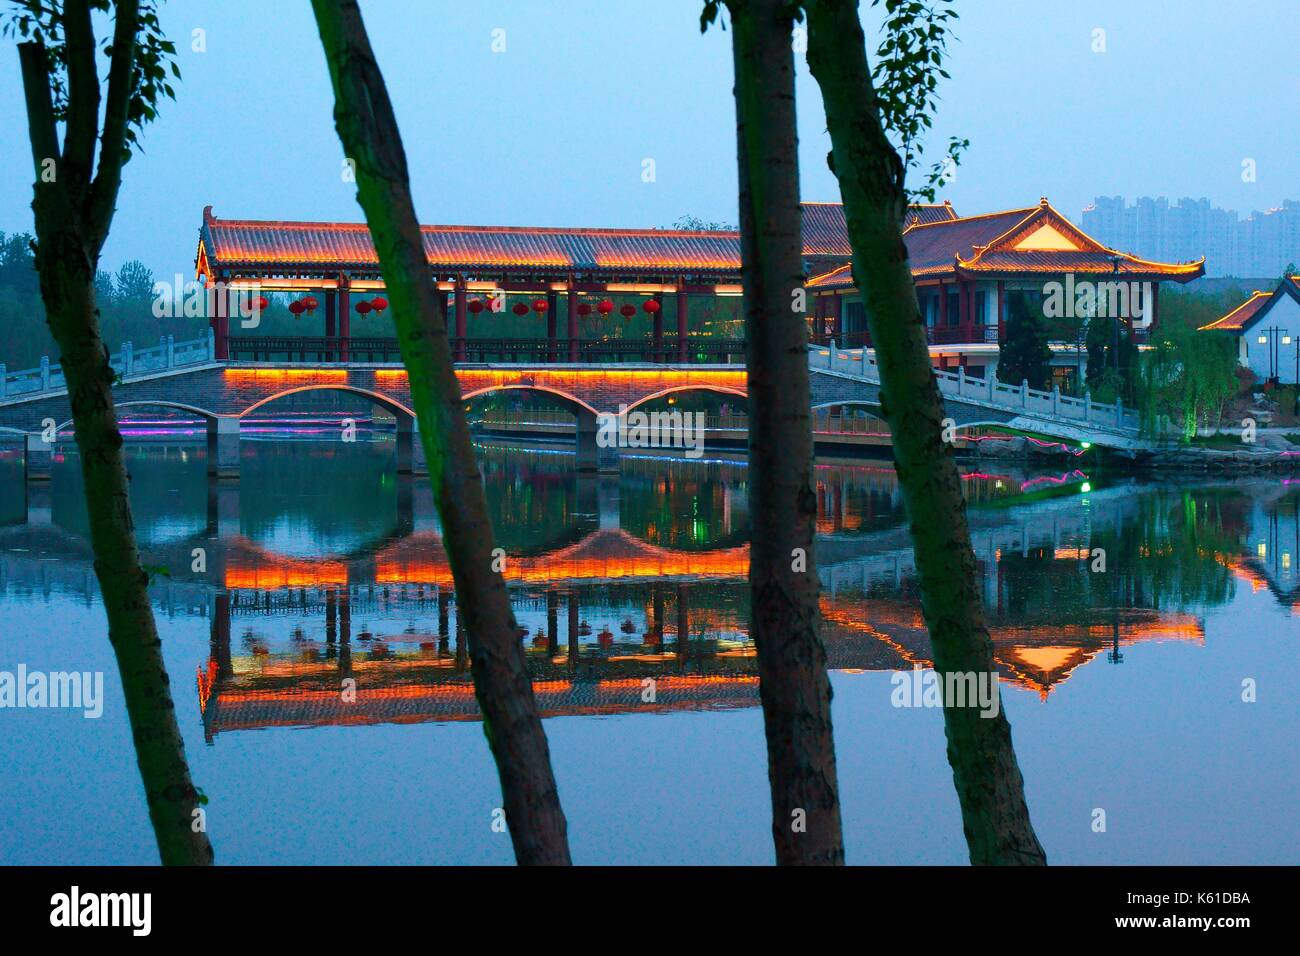 Dongzi Culture Park, a celebration of Confucian philosopher Dong Zhongshu. City of Dezhou, China. Lake pavillion. Evening light - Stock Image